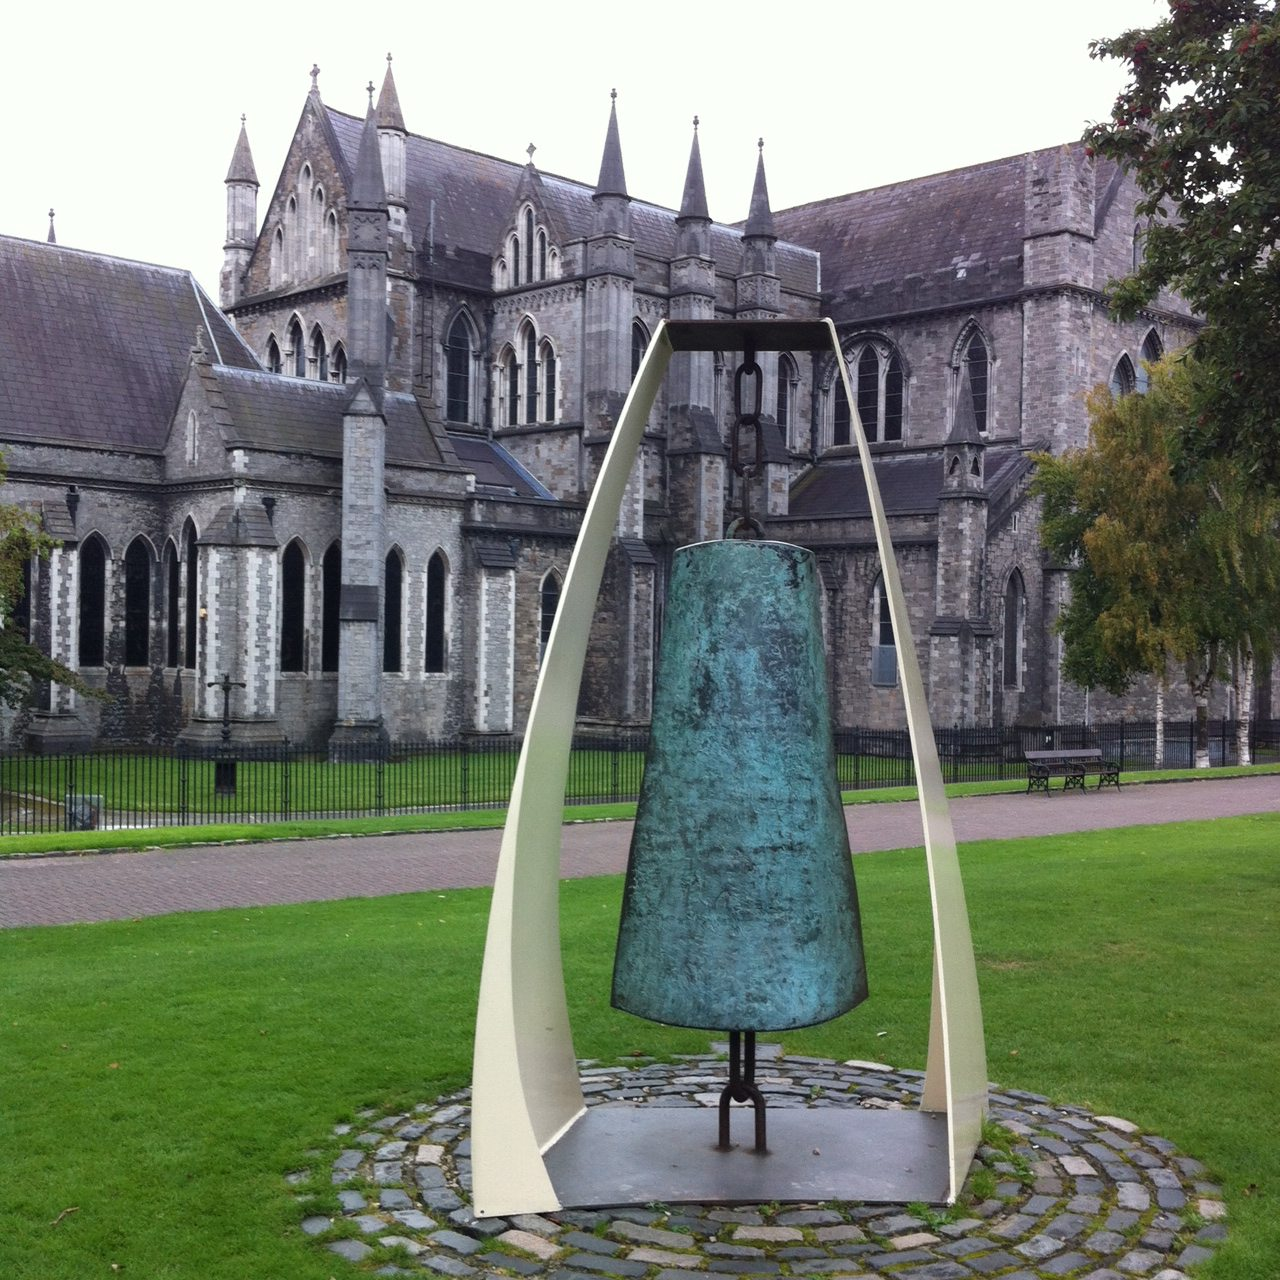 Liberty Bell, by Vivienne Roche occupies a prominent spot in the park.